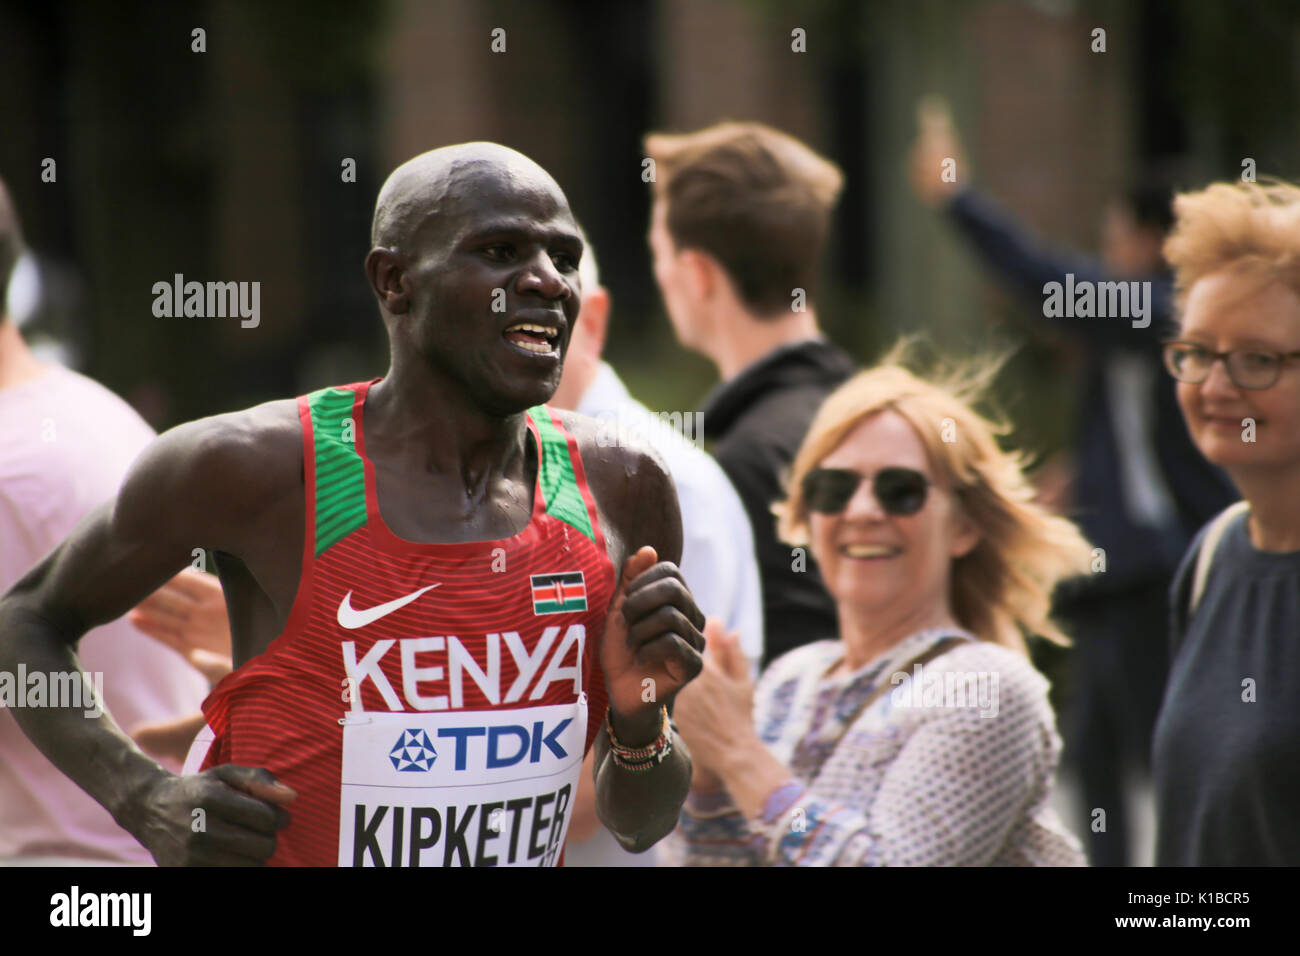 6 Aug '17 London: Kenyan athlete  GIDEON KIPKEMOI KIPKETER in 2017 World Athletics Championship men's marathon on way to 5th place in 2:10:56 - Stock Image